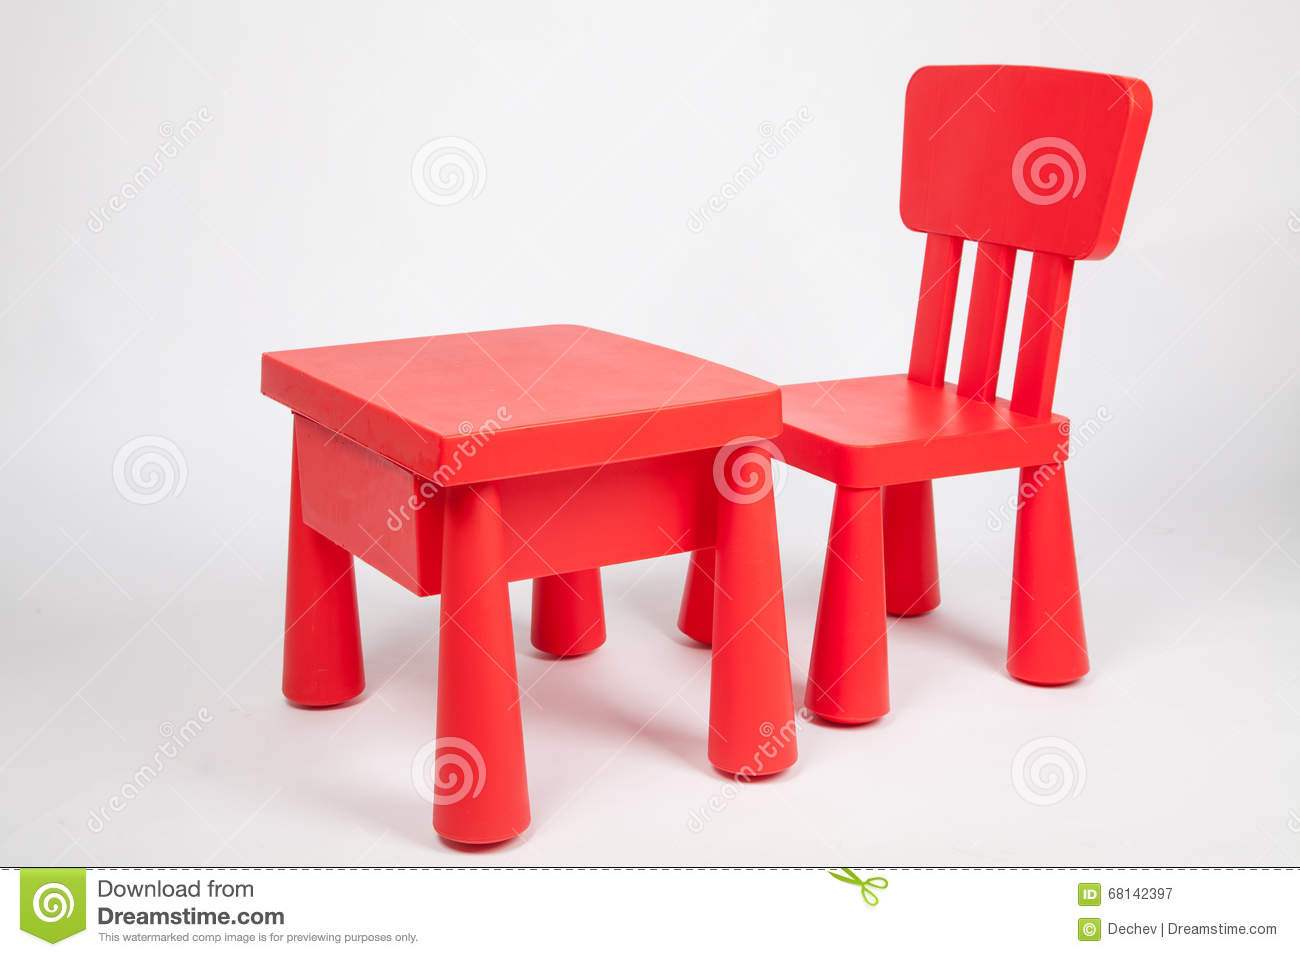 Red chair photography - Red Chair And Red Table For Children In Kindergarten Preschool Classroom Royalty Free Stock Photography